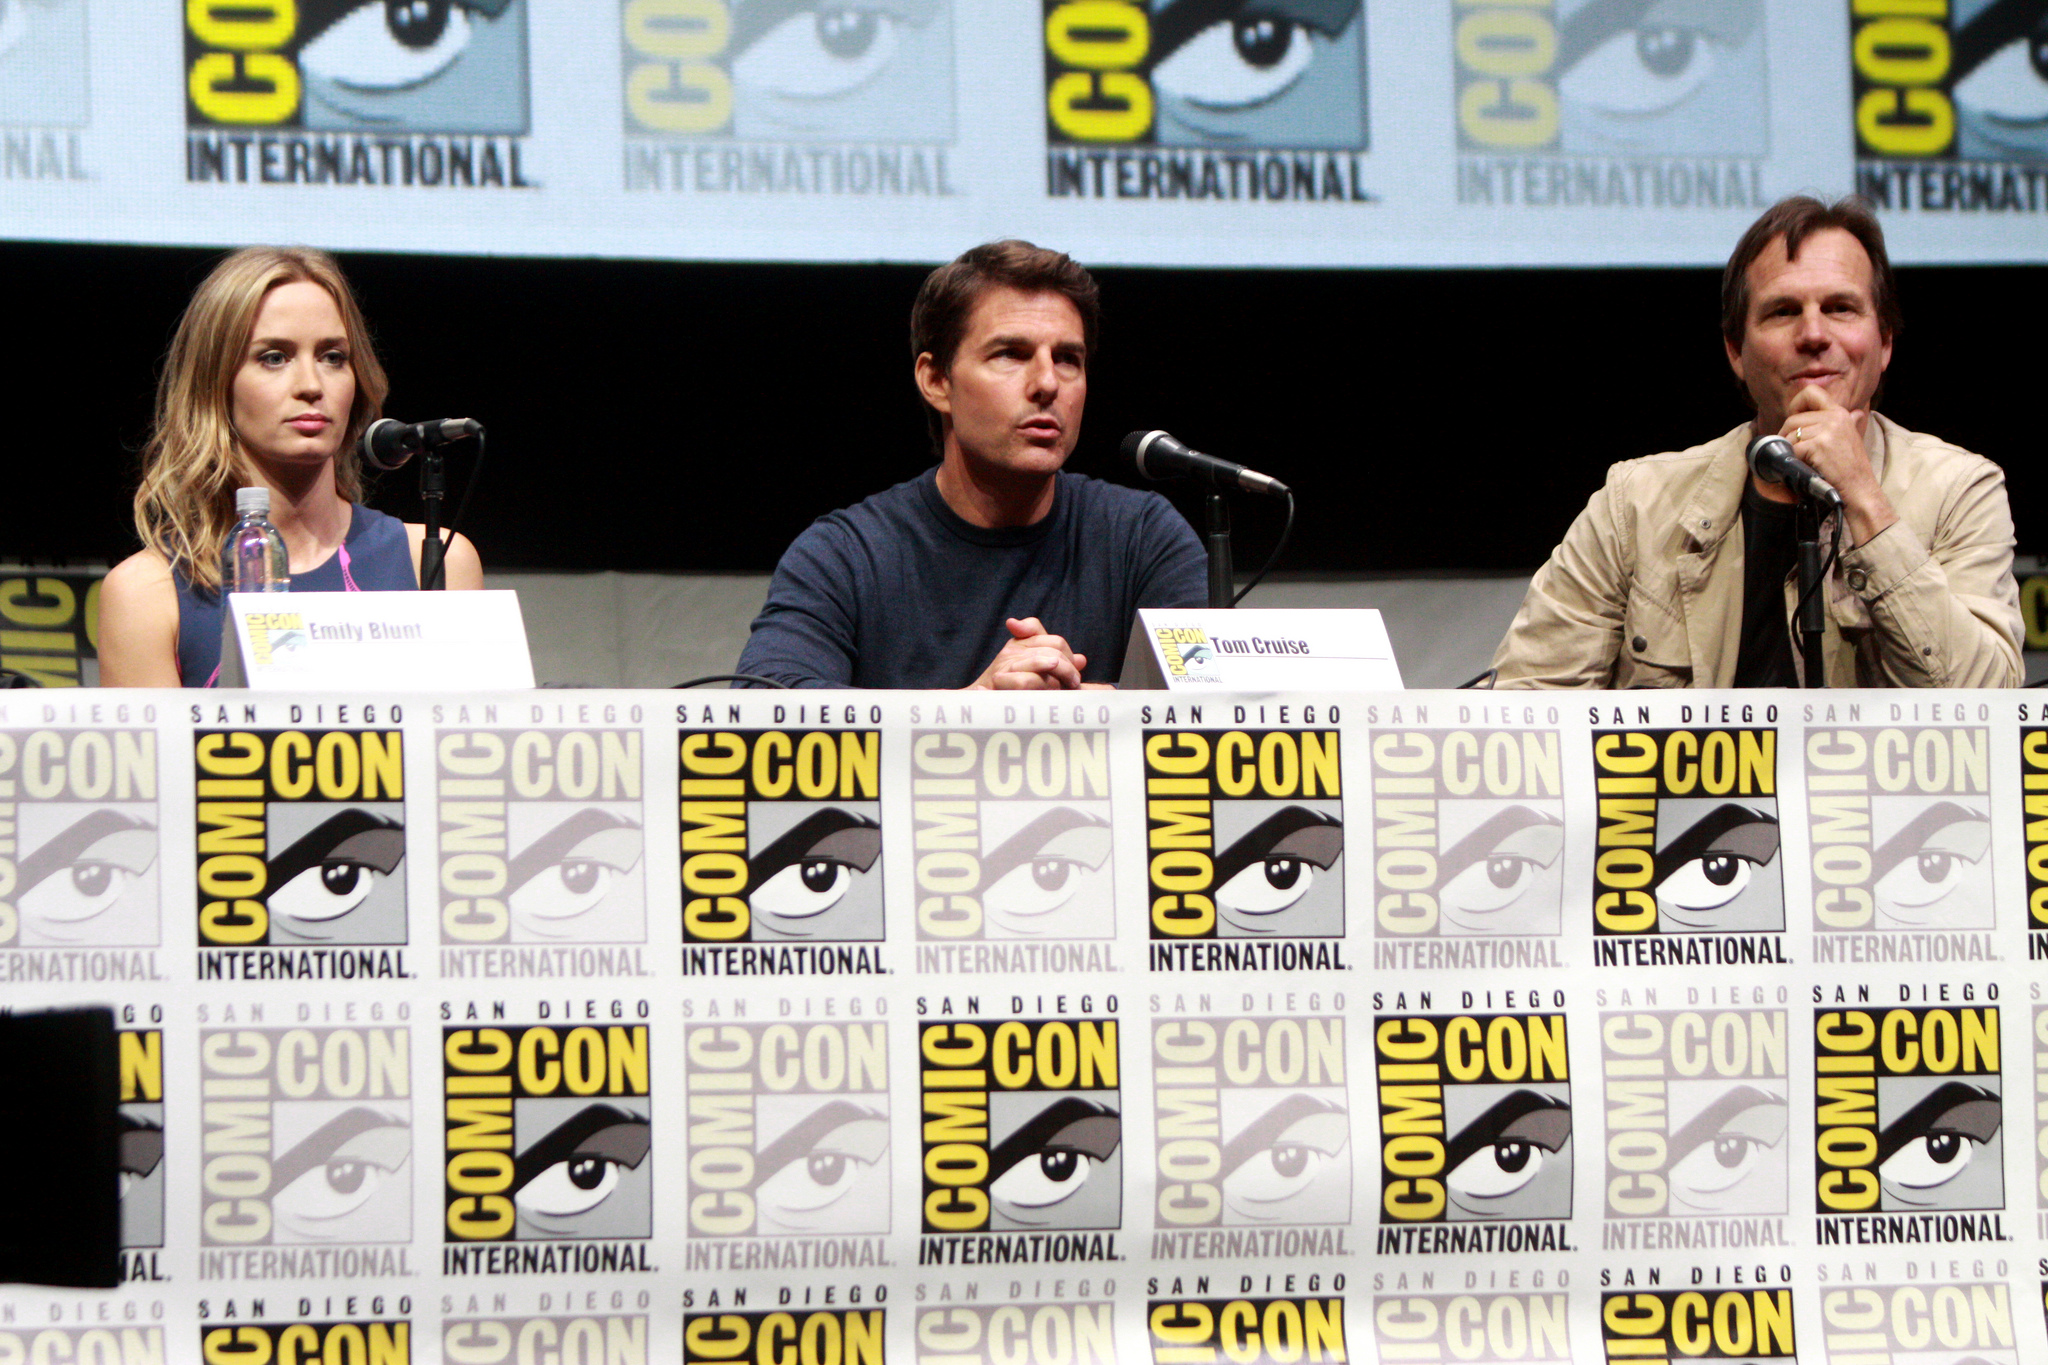 Emily Blunt, Tom Cruise and Bill Paxton speaking at the 2013 San Diego Comic Con International. Photo by Gage Skidmore